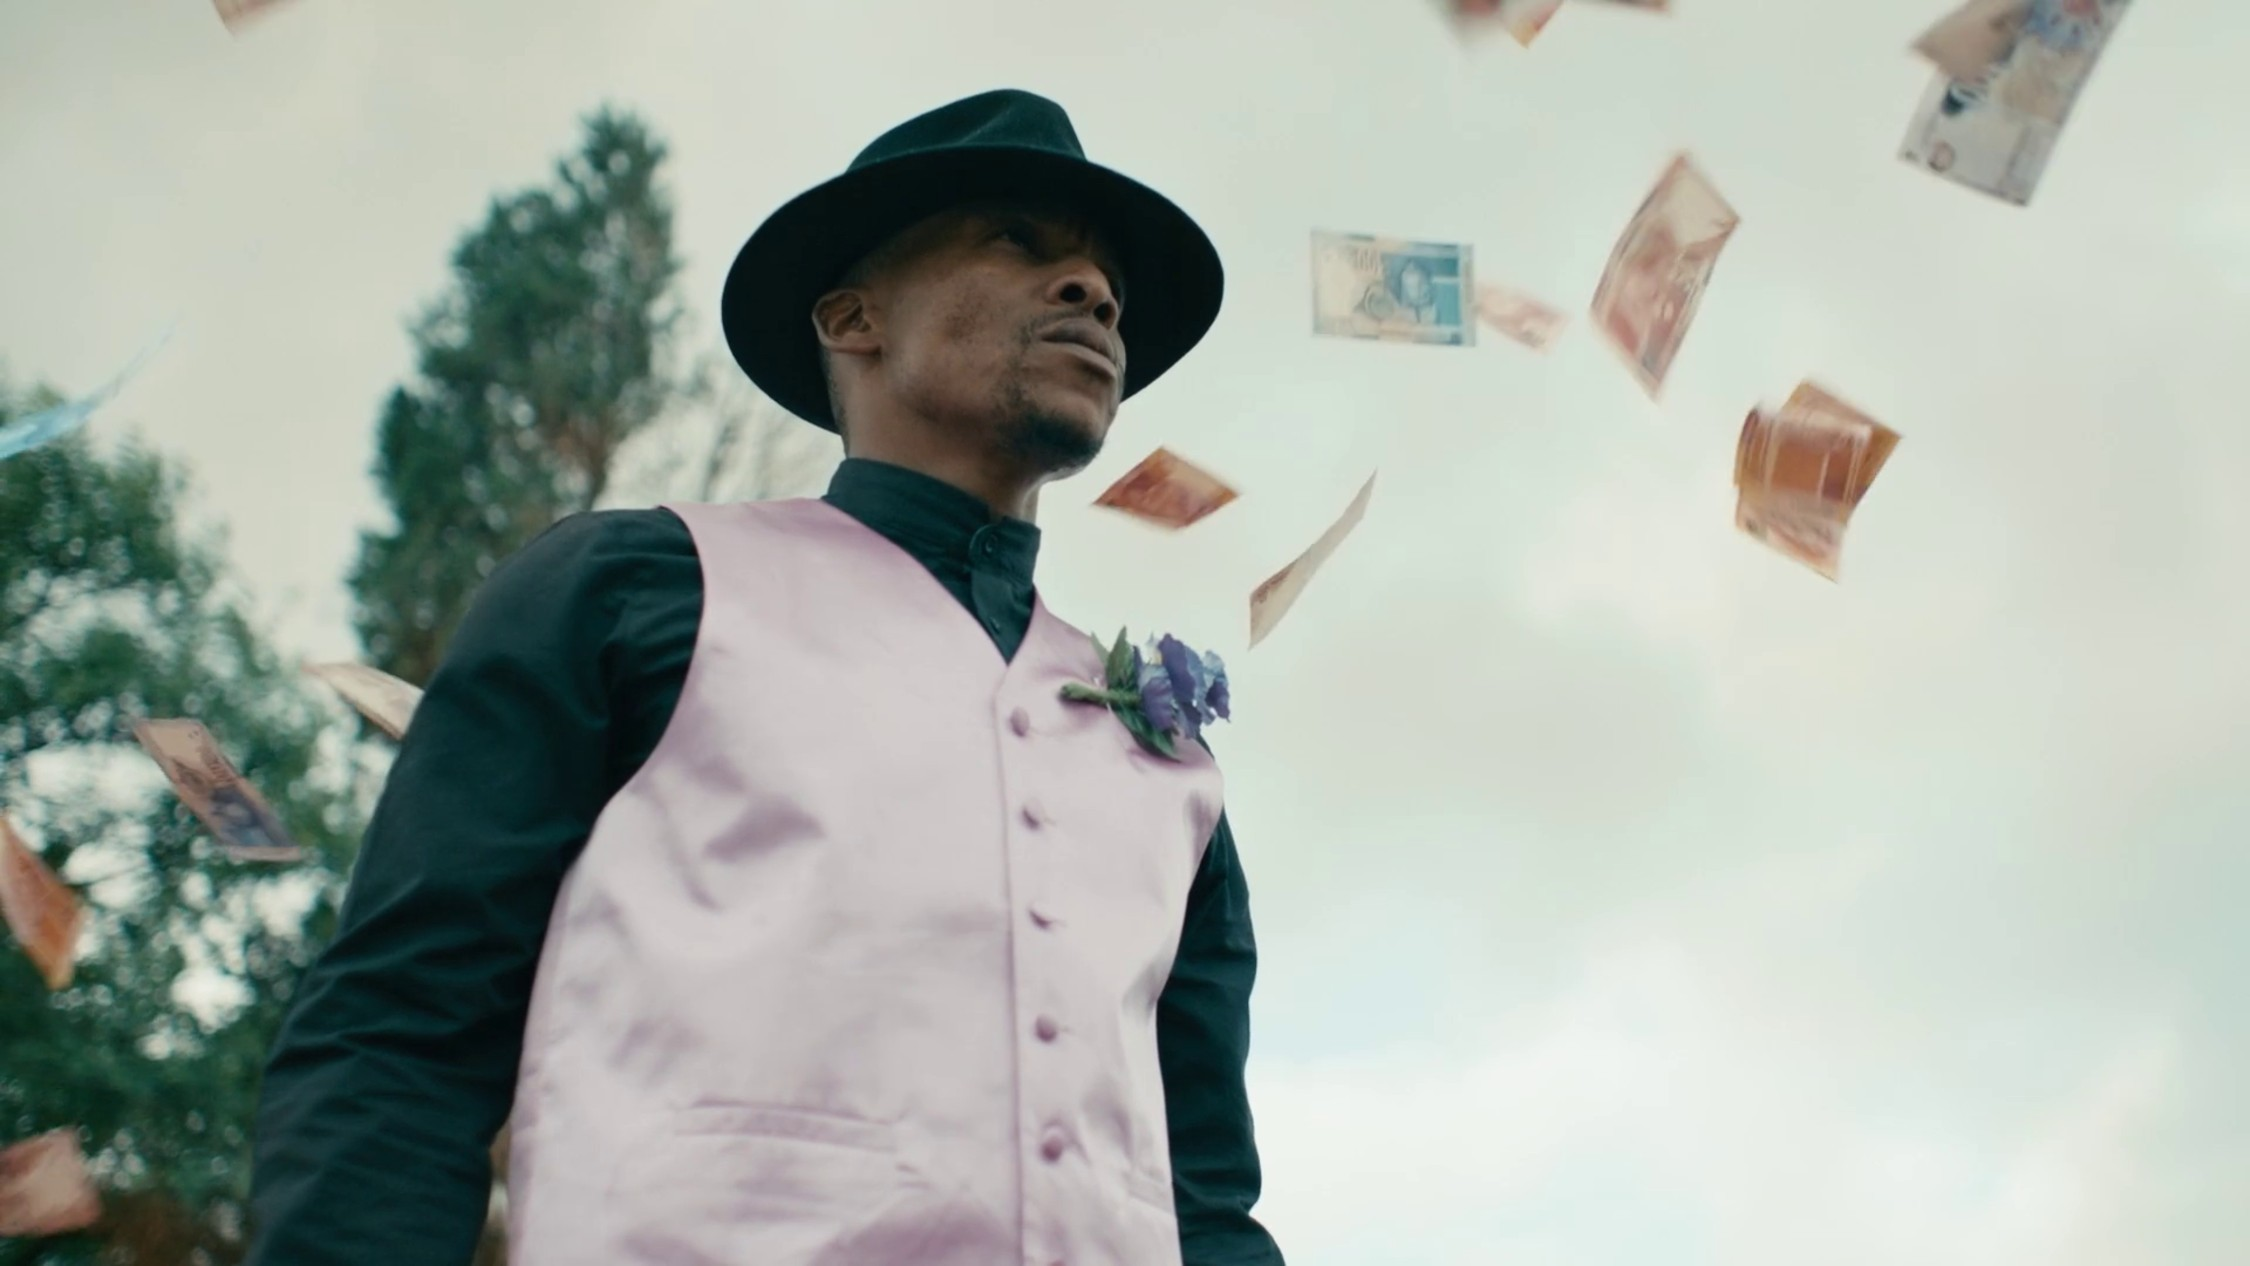 A man in hat and pink waistcoat rained on with with bank notes